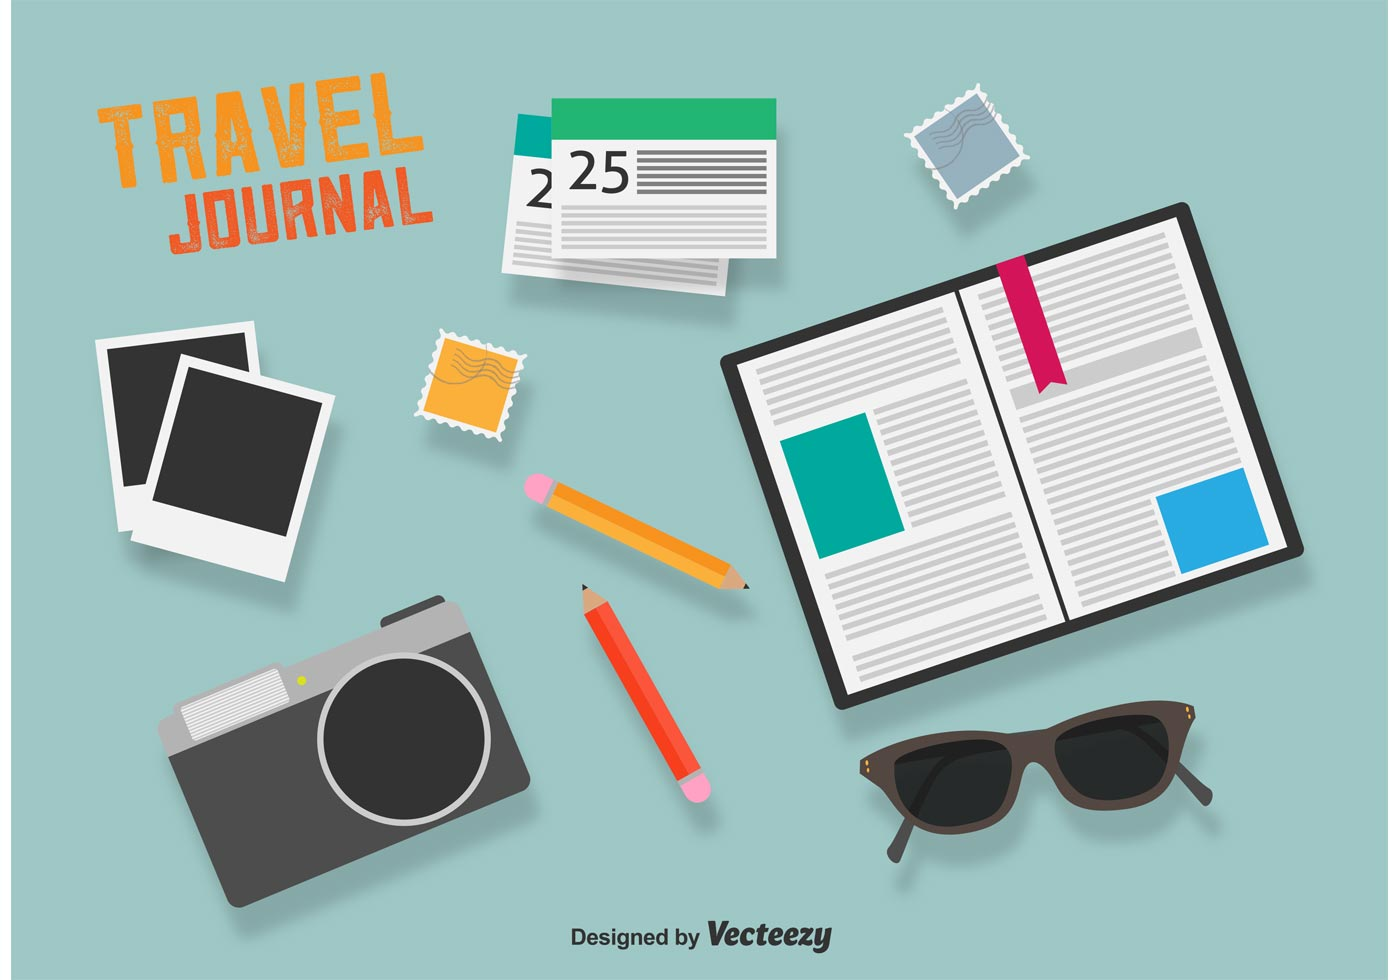 Travel Journal Color Flat Icons - Download Free Vector Art ...